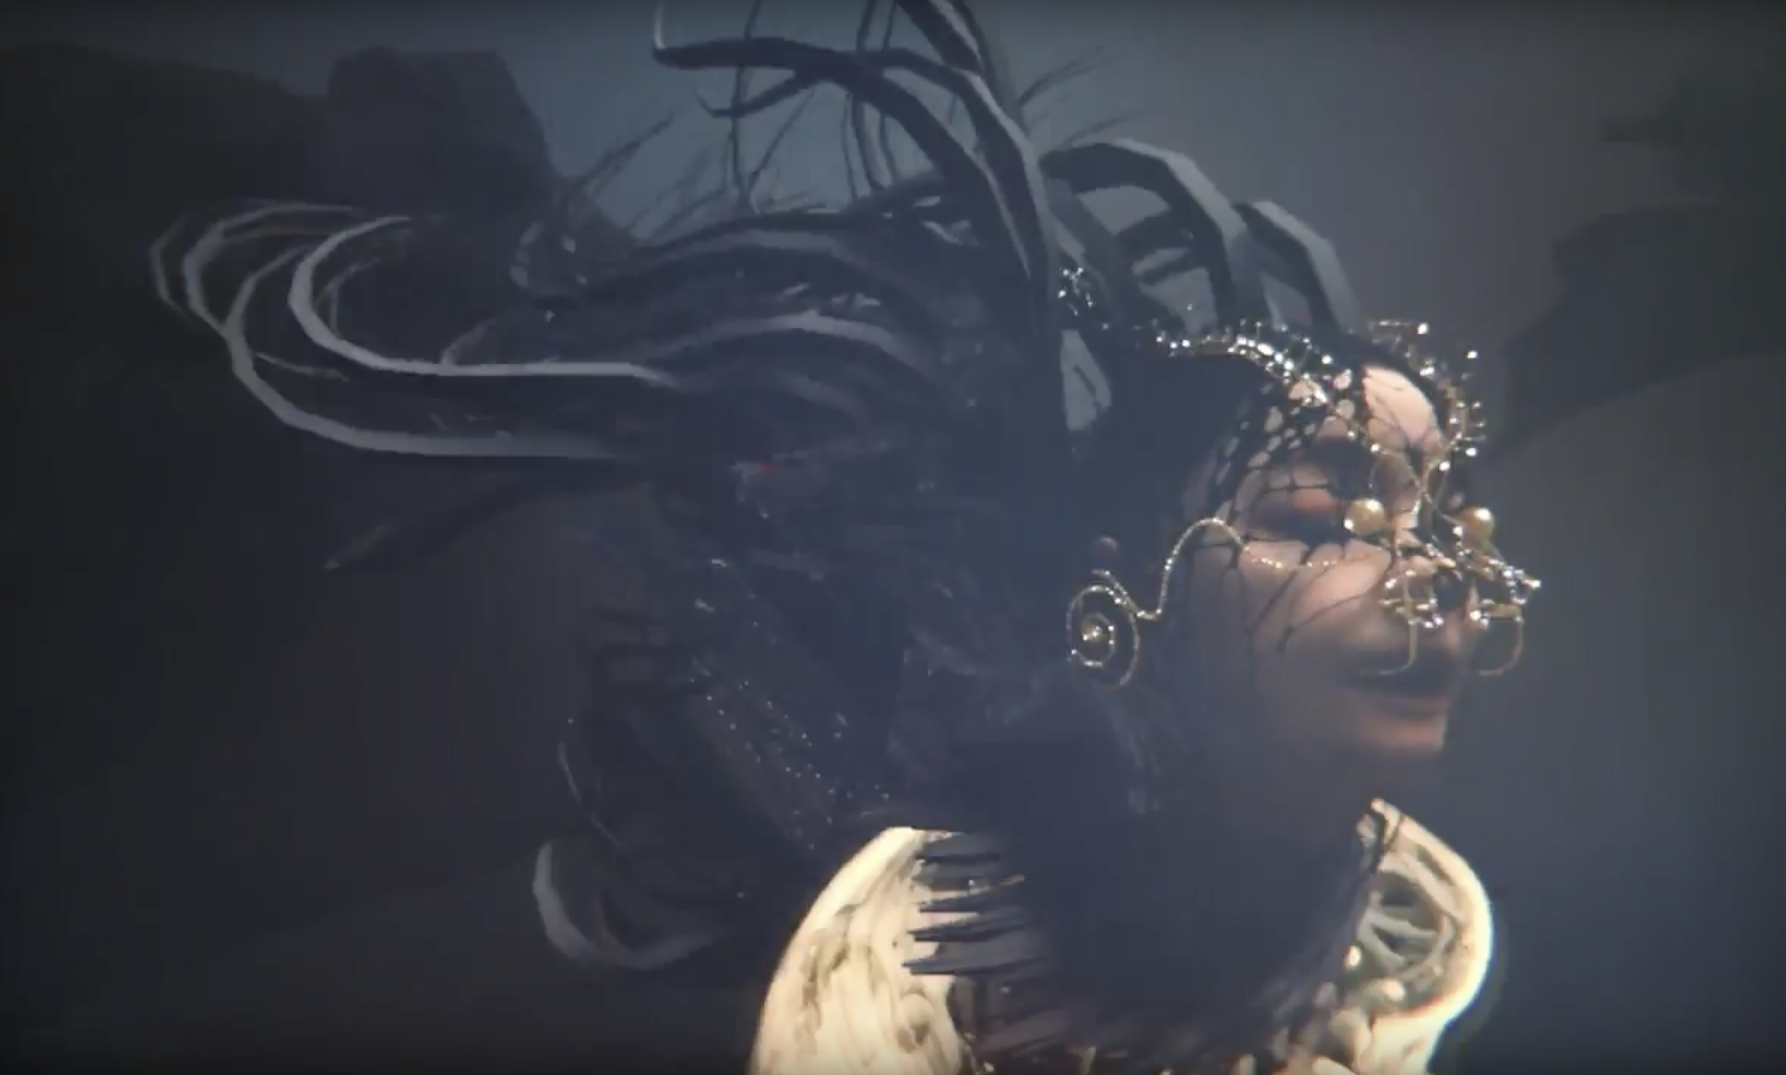 """Björk has shared a new teaser for the  virtual reality music video for Vulnicura's """"Notget."""" Directed by Warren Du Preez and Nick Thornton Jones, the video depicts a digital avatar of Björk performing the song in an ethereal environment."""